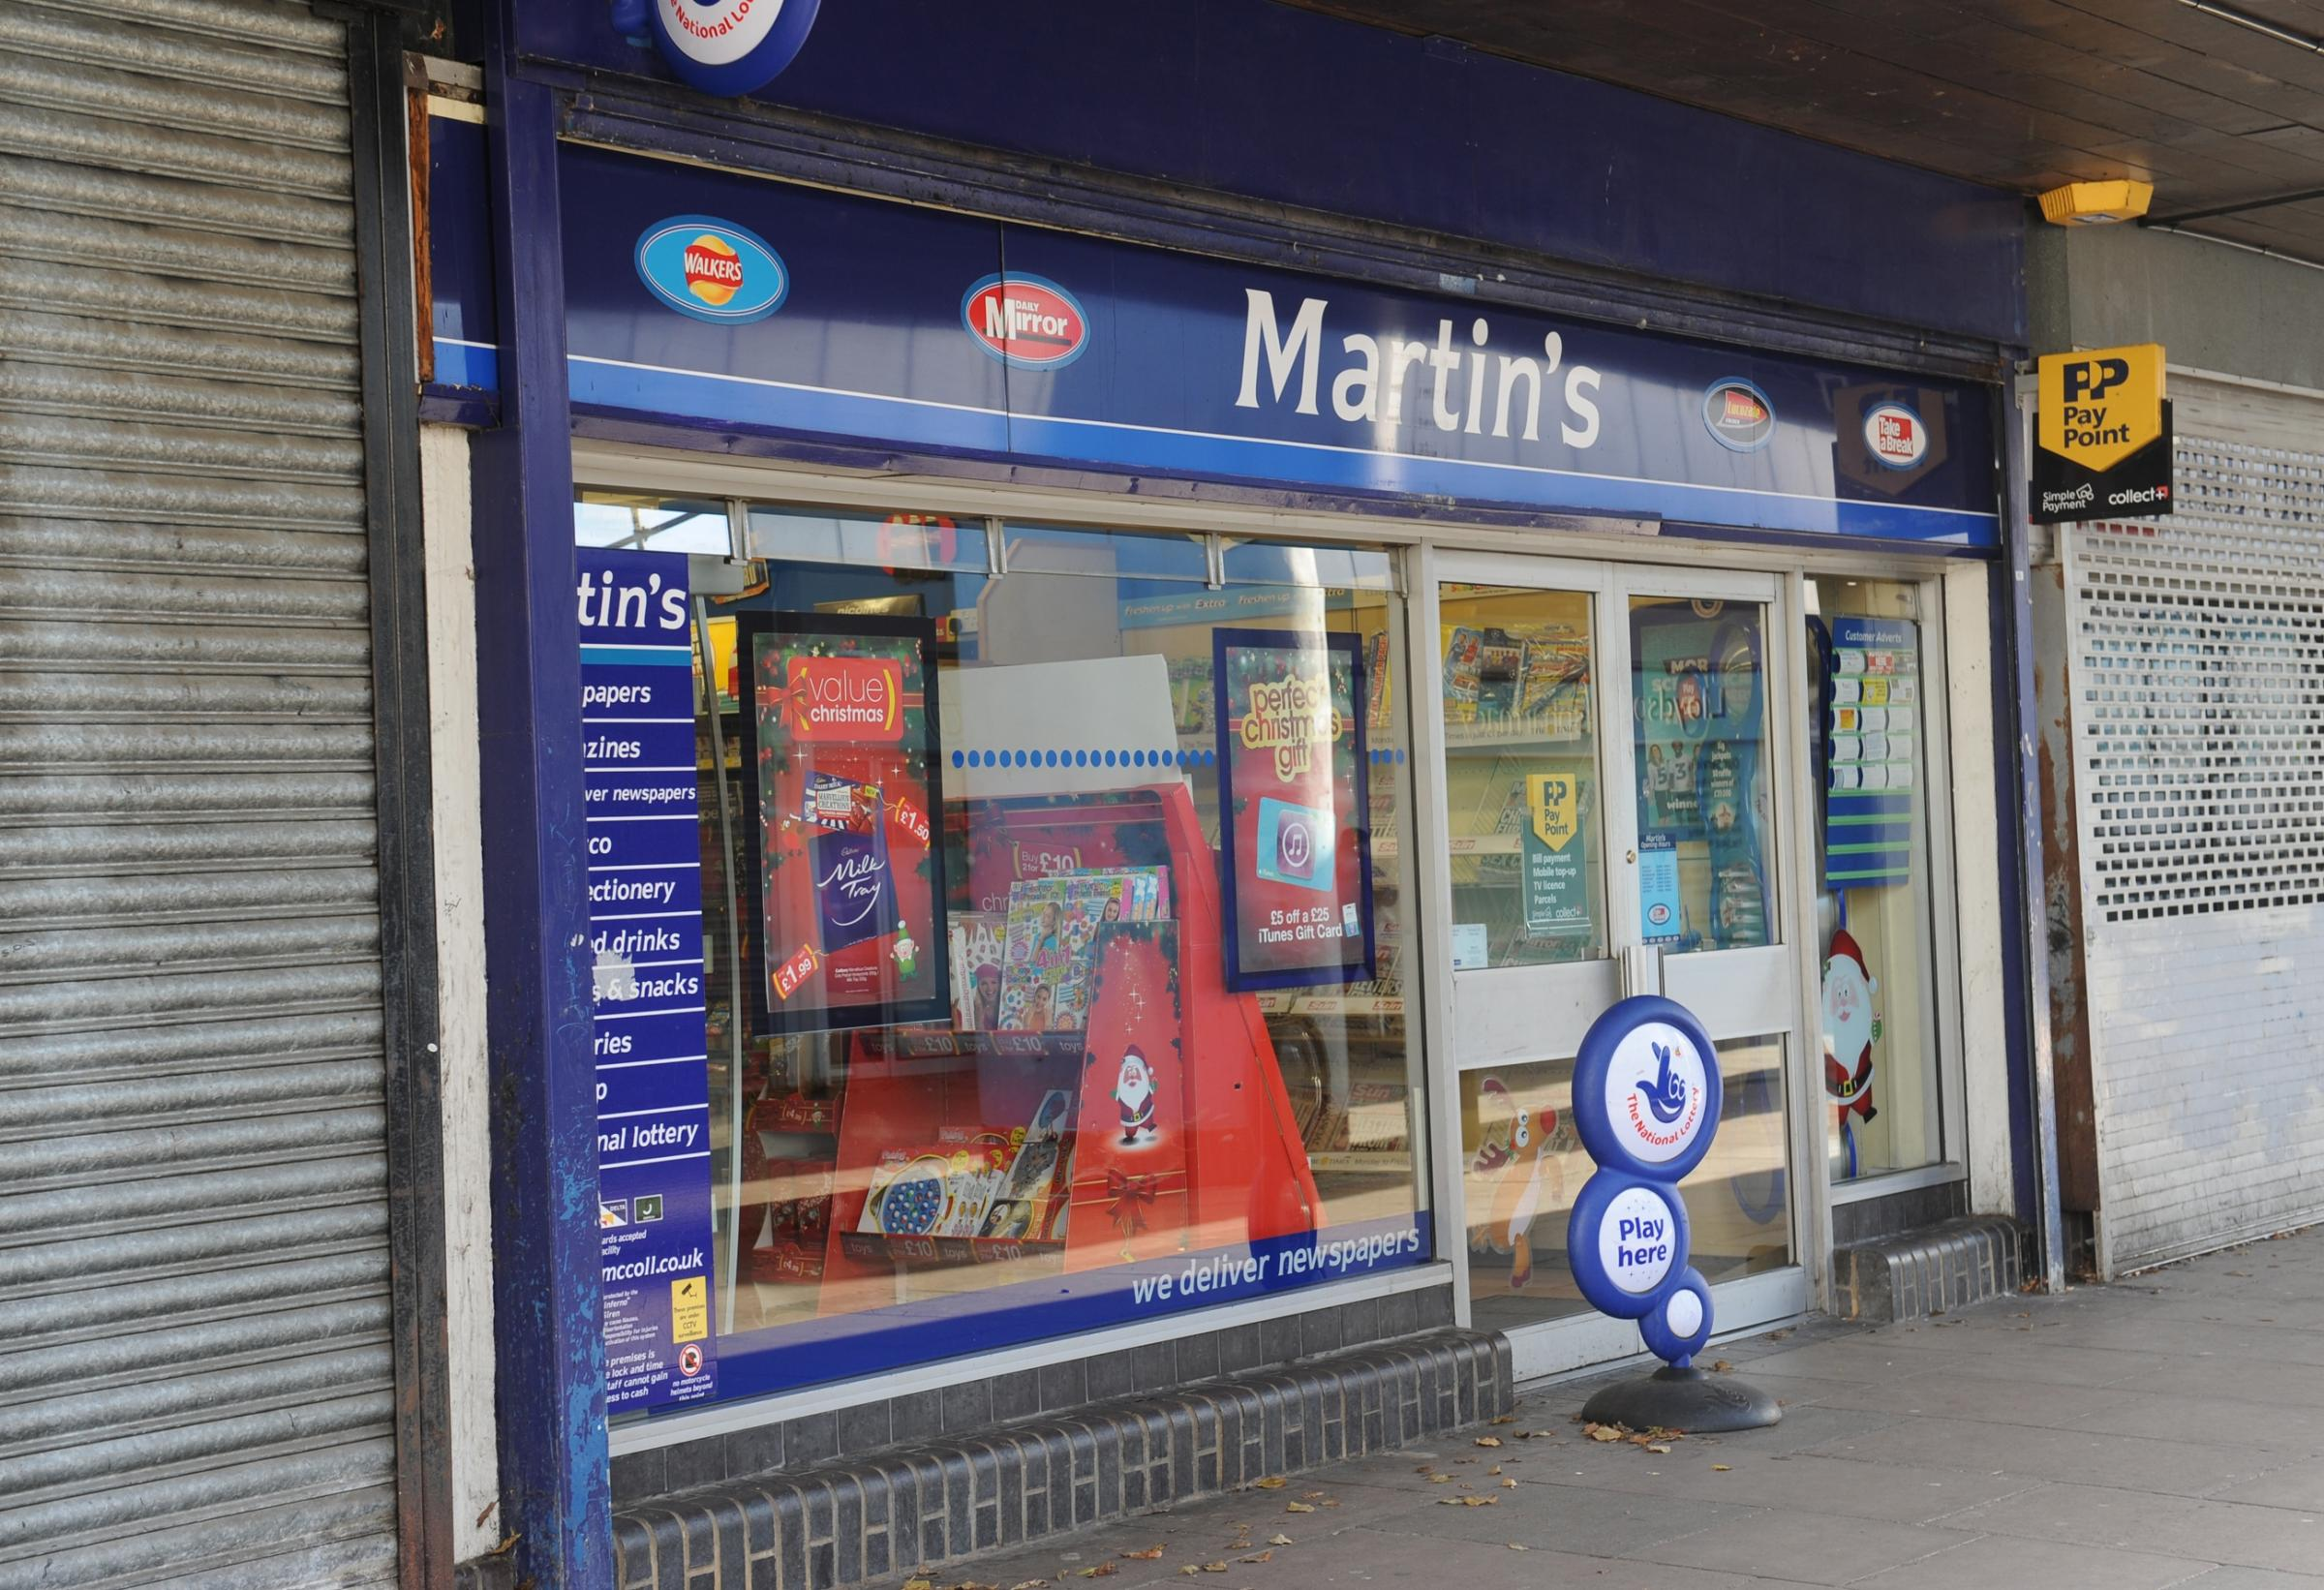 Yet another Martin's newsagent knife raid